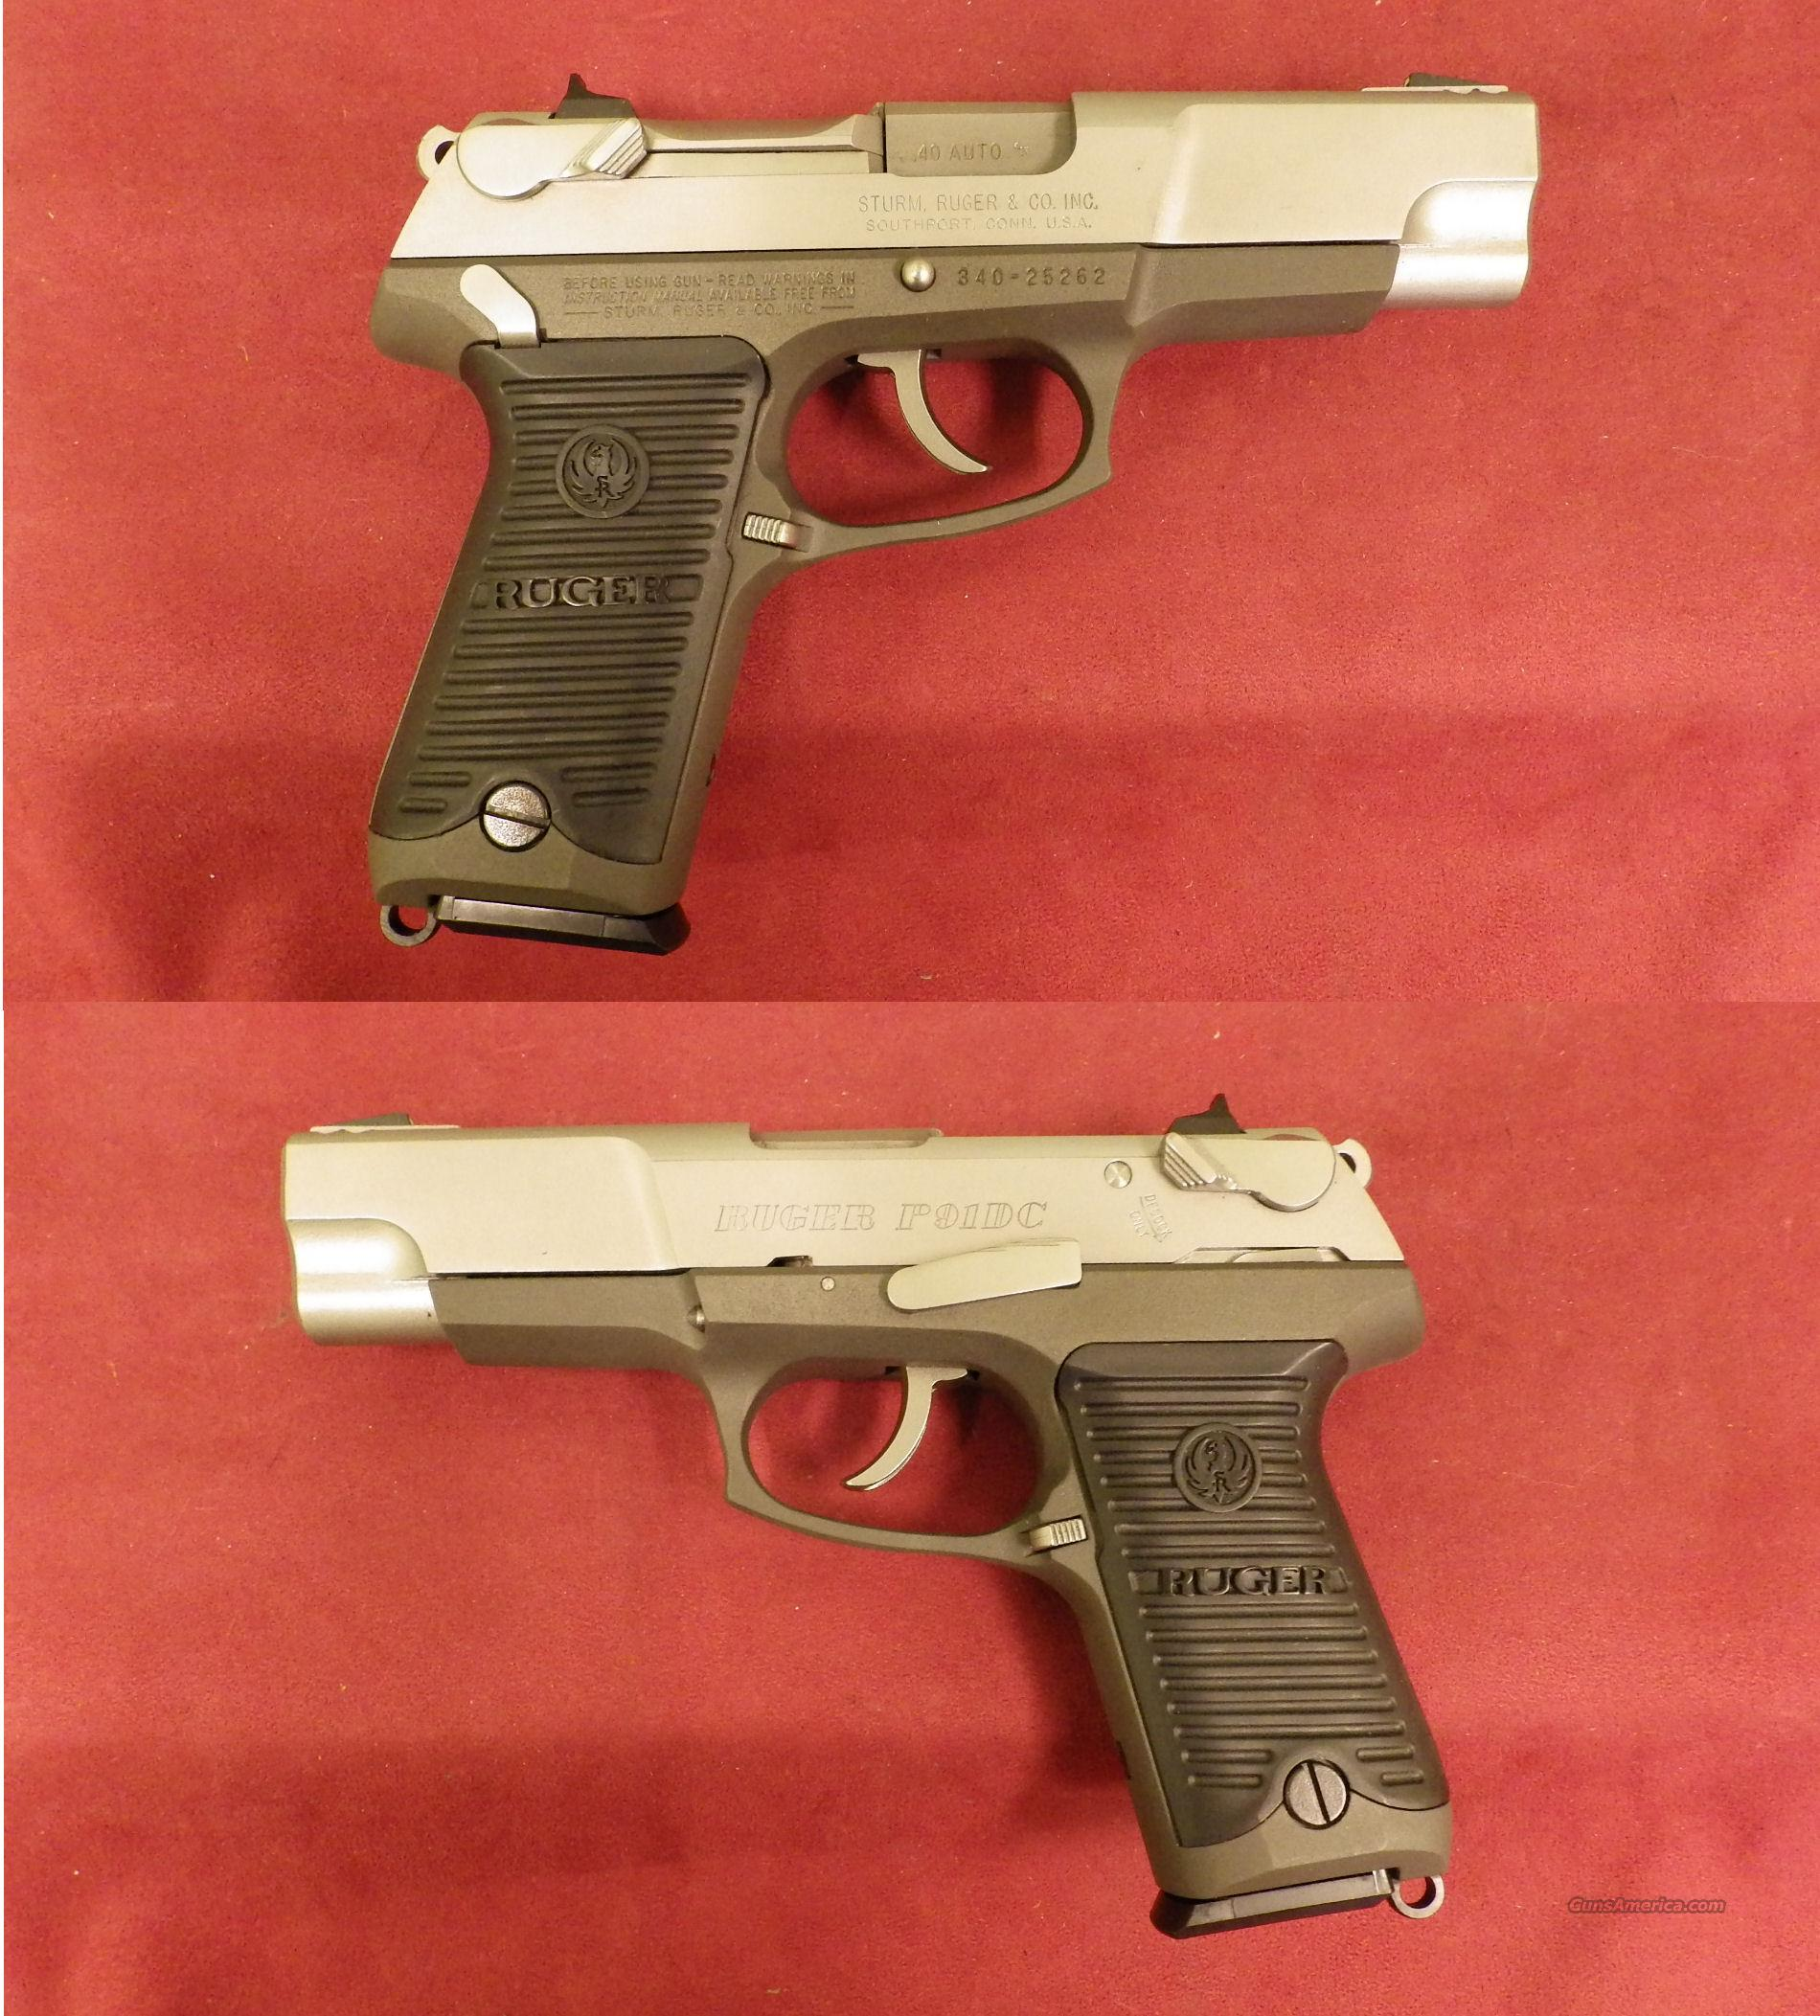 Ruger P91DC 40 S&W  *MUST CALL*  Guns > Pistols > Ruger Semi-Auto Pistols > P-Series